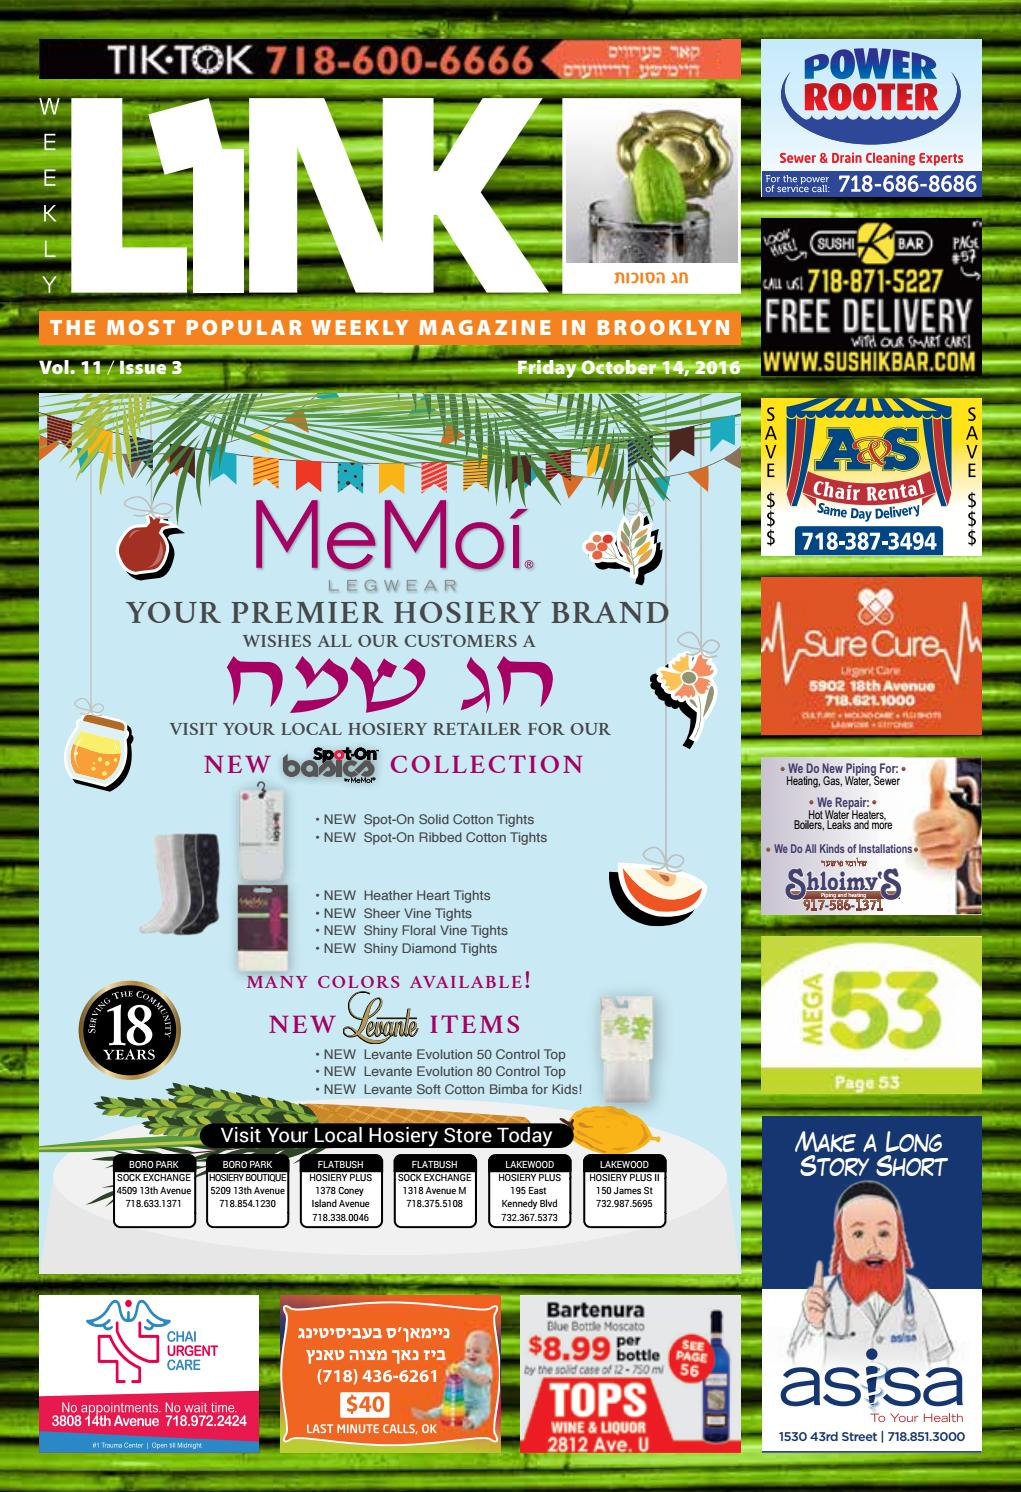 Vol 11 issue 3 by Weekly Link - issuu